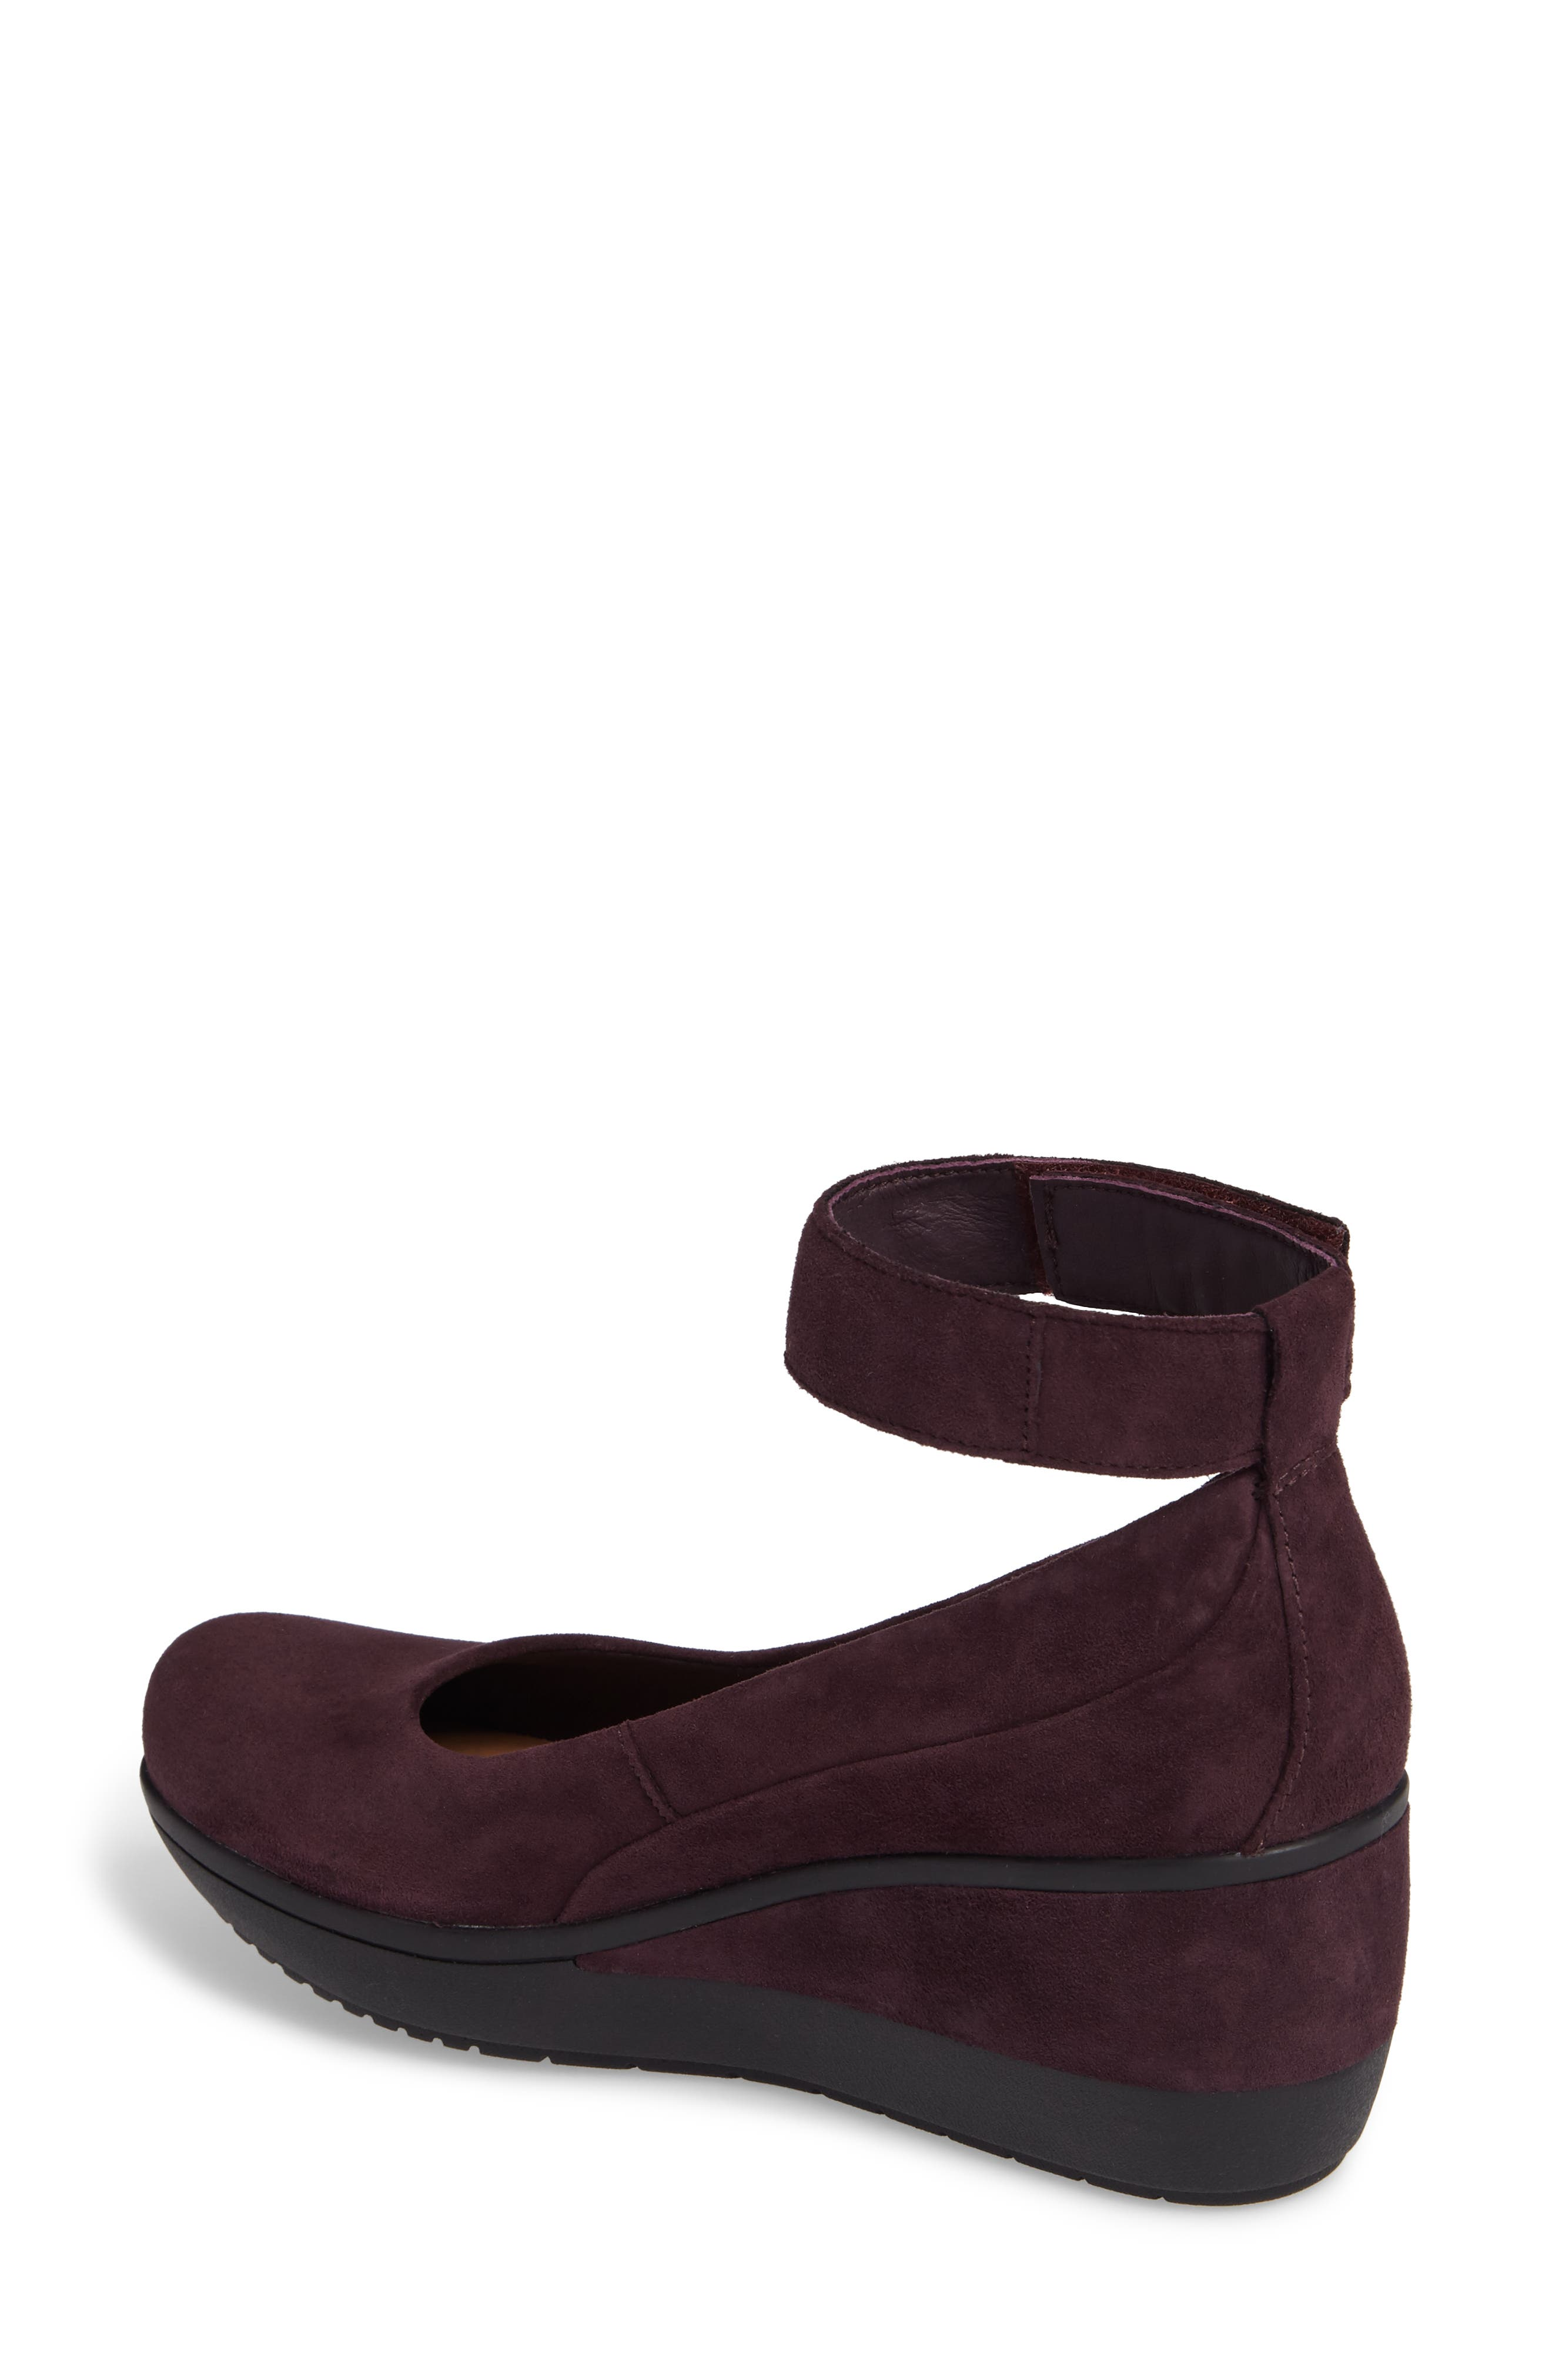 Wynnmere Fox Ankle Strap Pump,                             Alternate thumbnail 2, color,                             Aubergine Suede